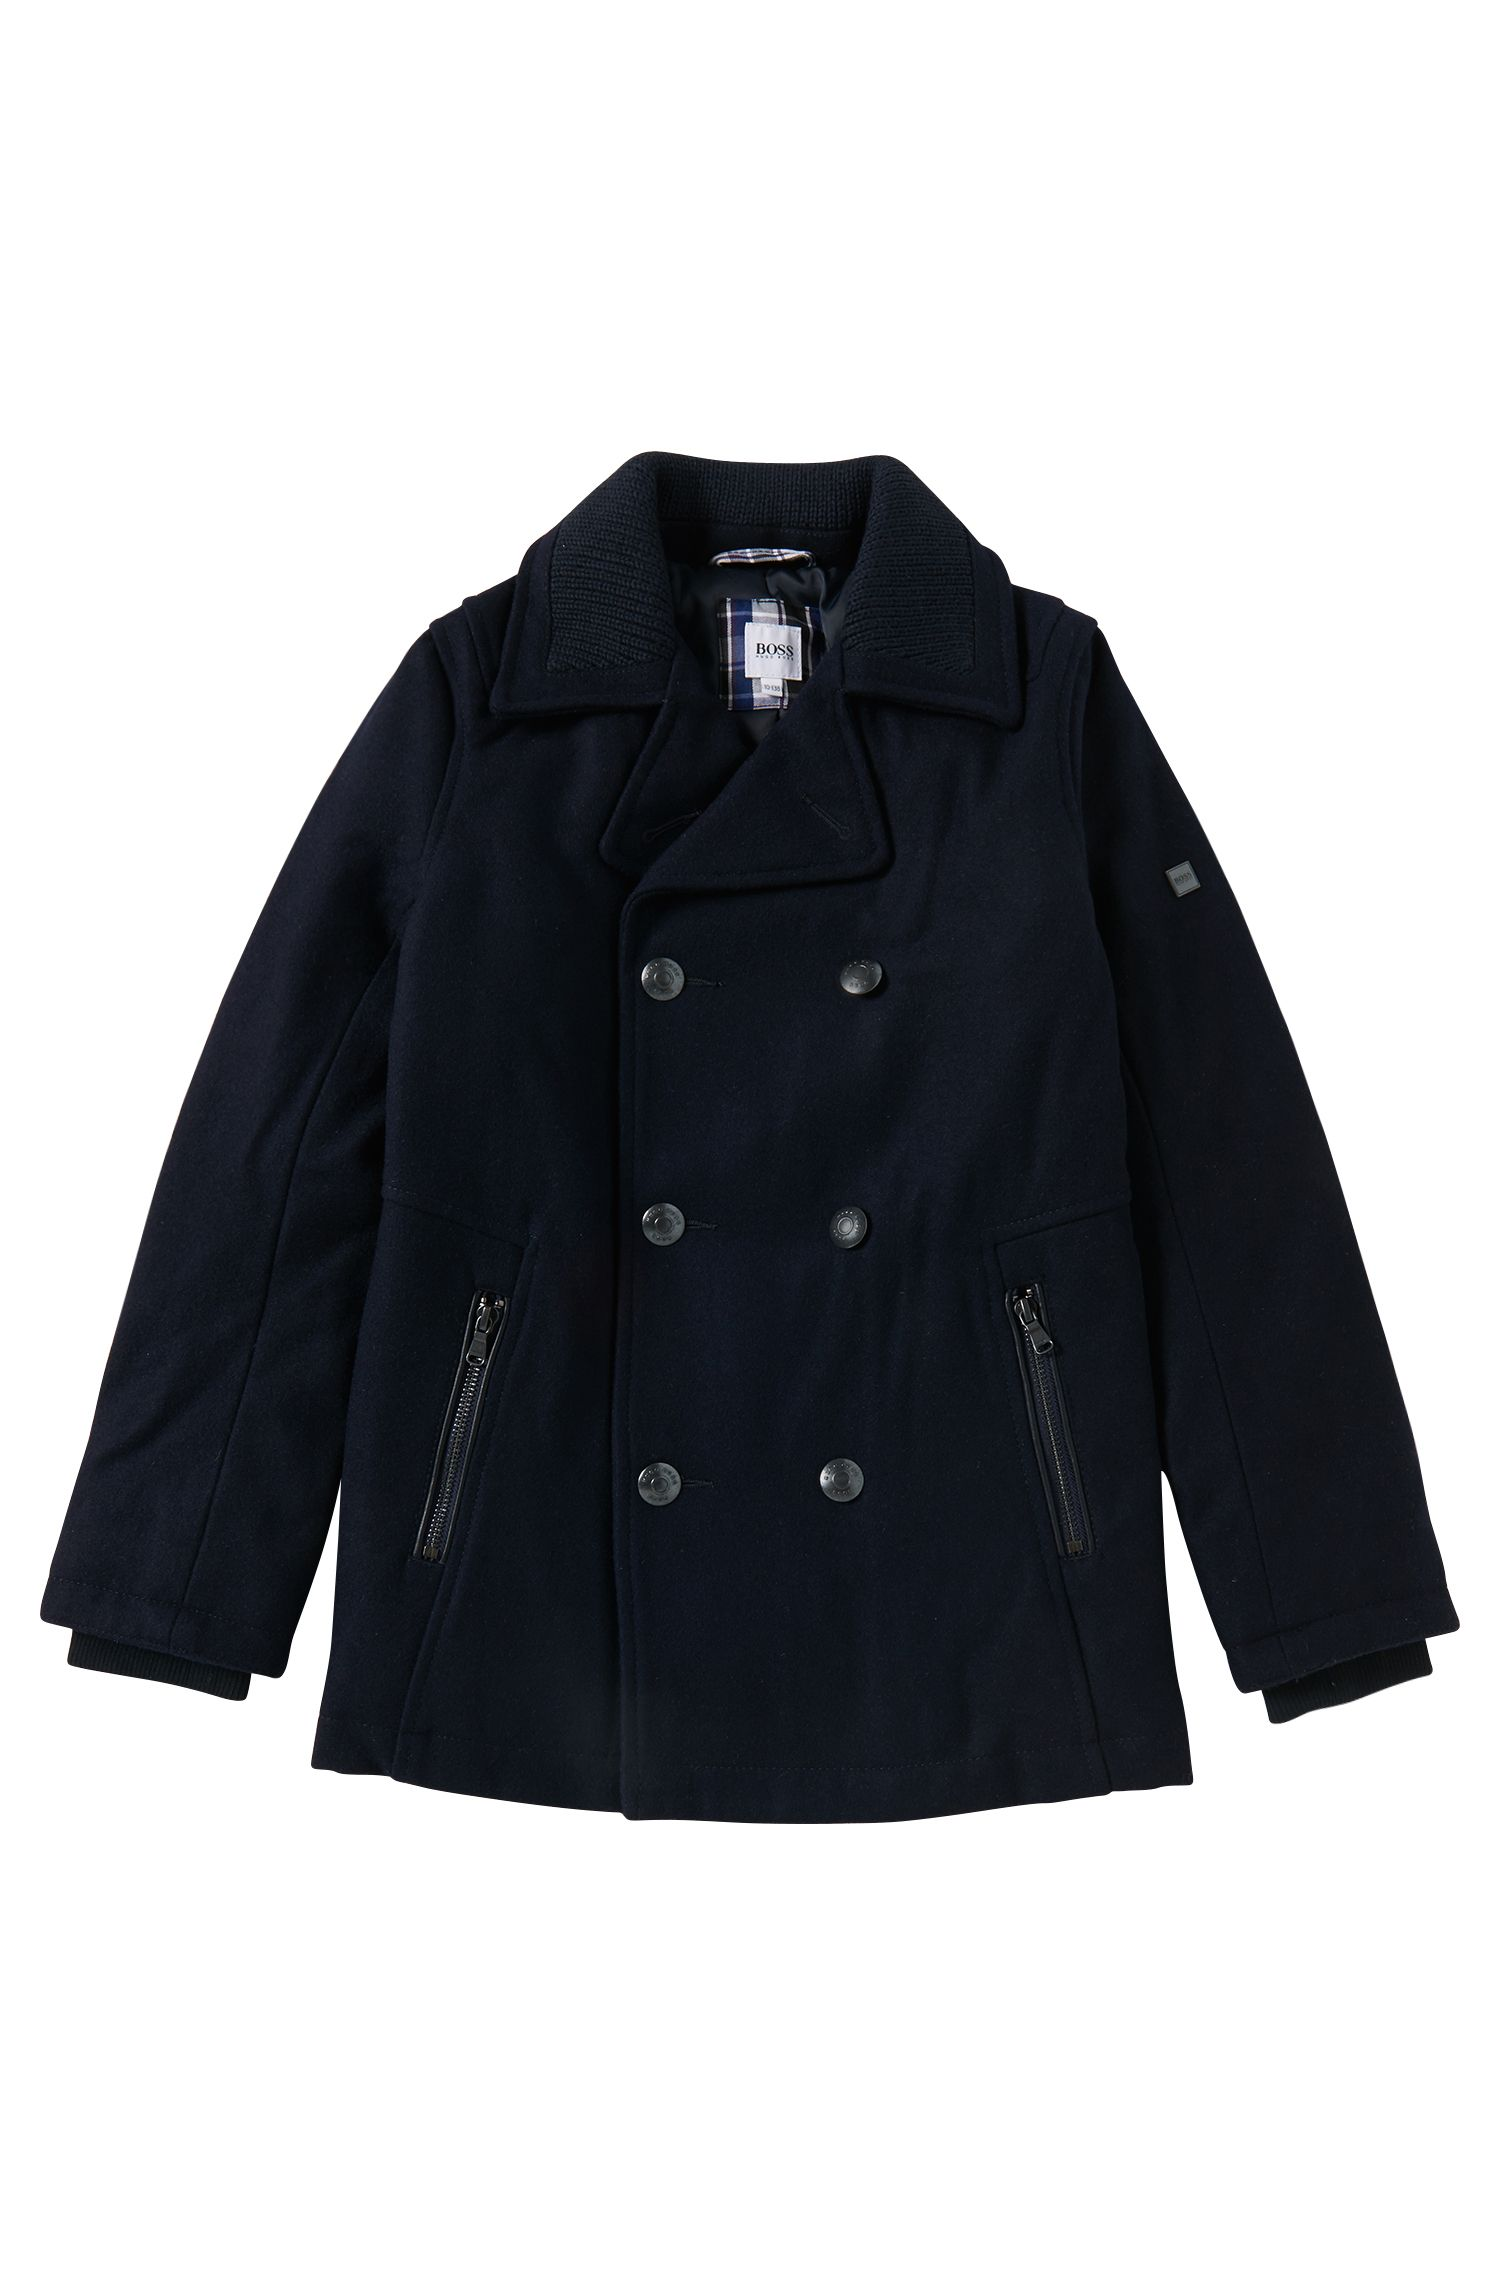 'J26257' | Boys Wool Pea Coat